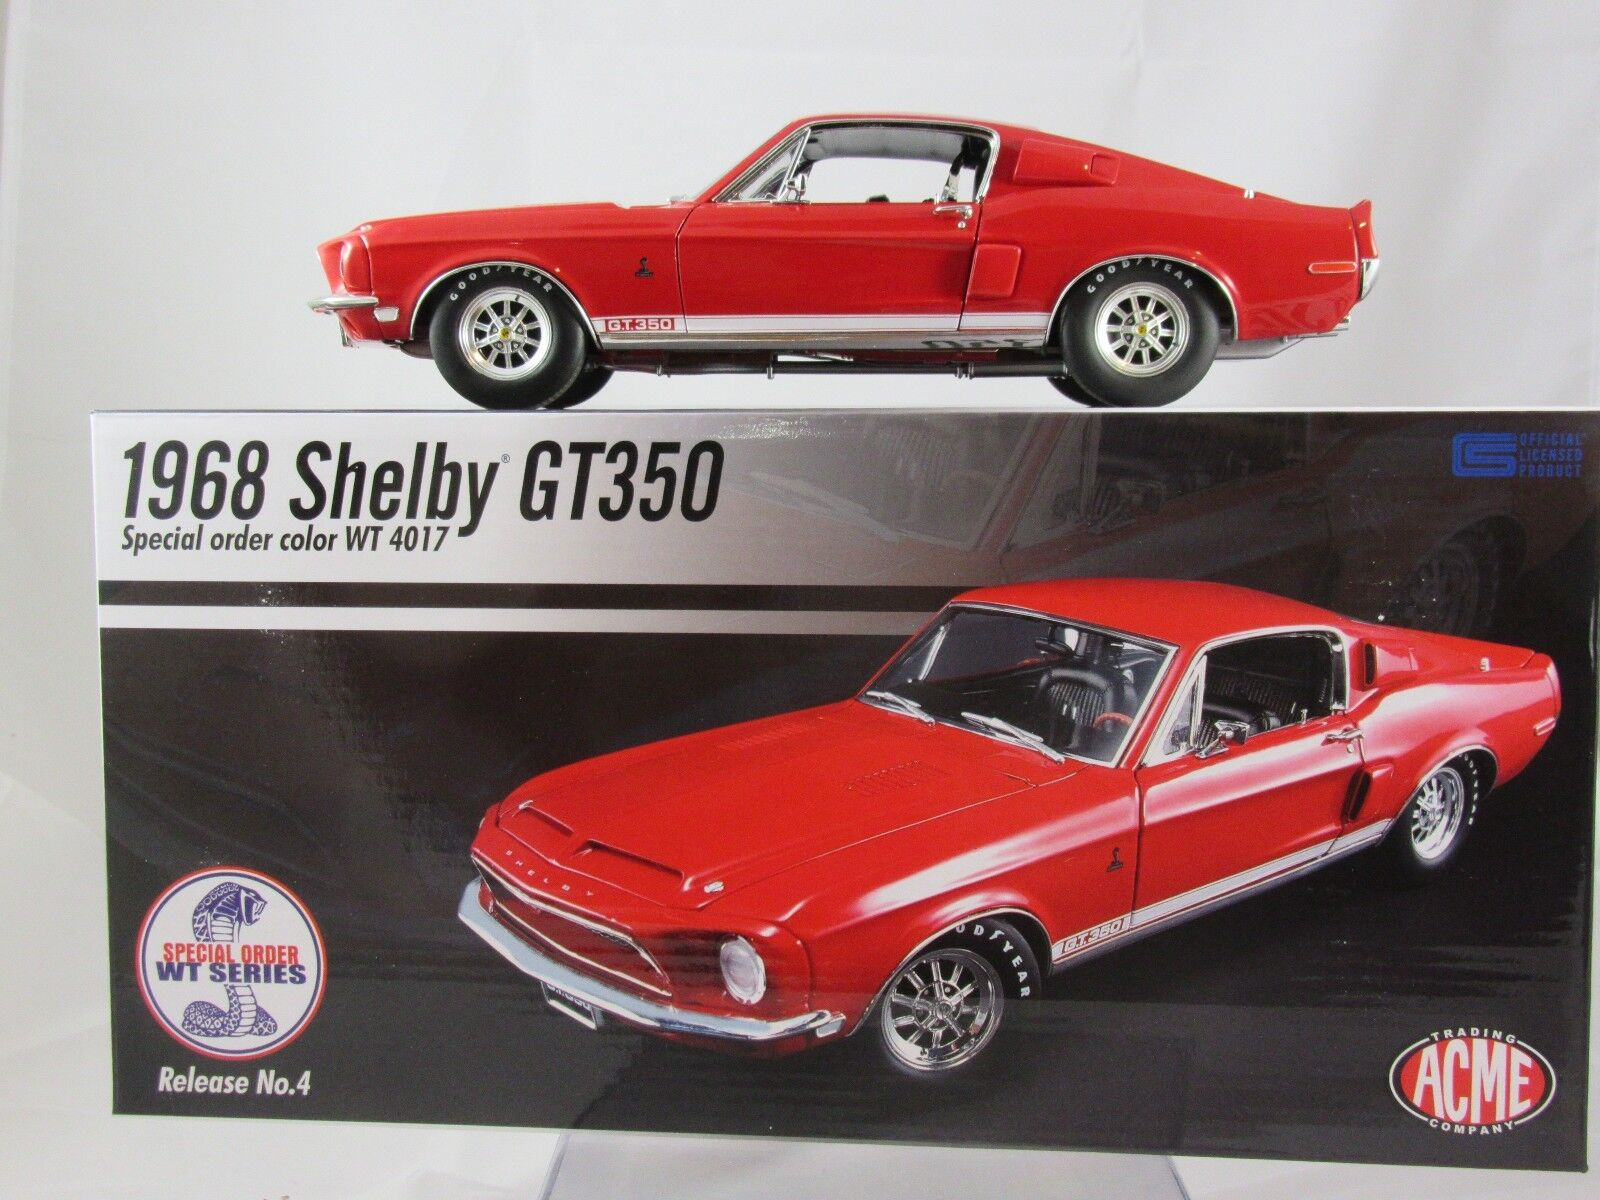 Acme 1968 Shelby GT350 - WT color Code 4017 - WT A1801808